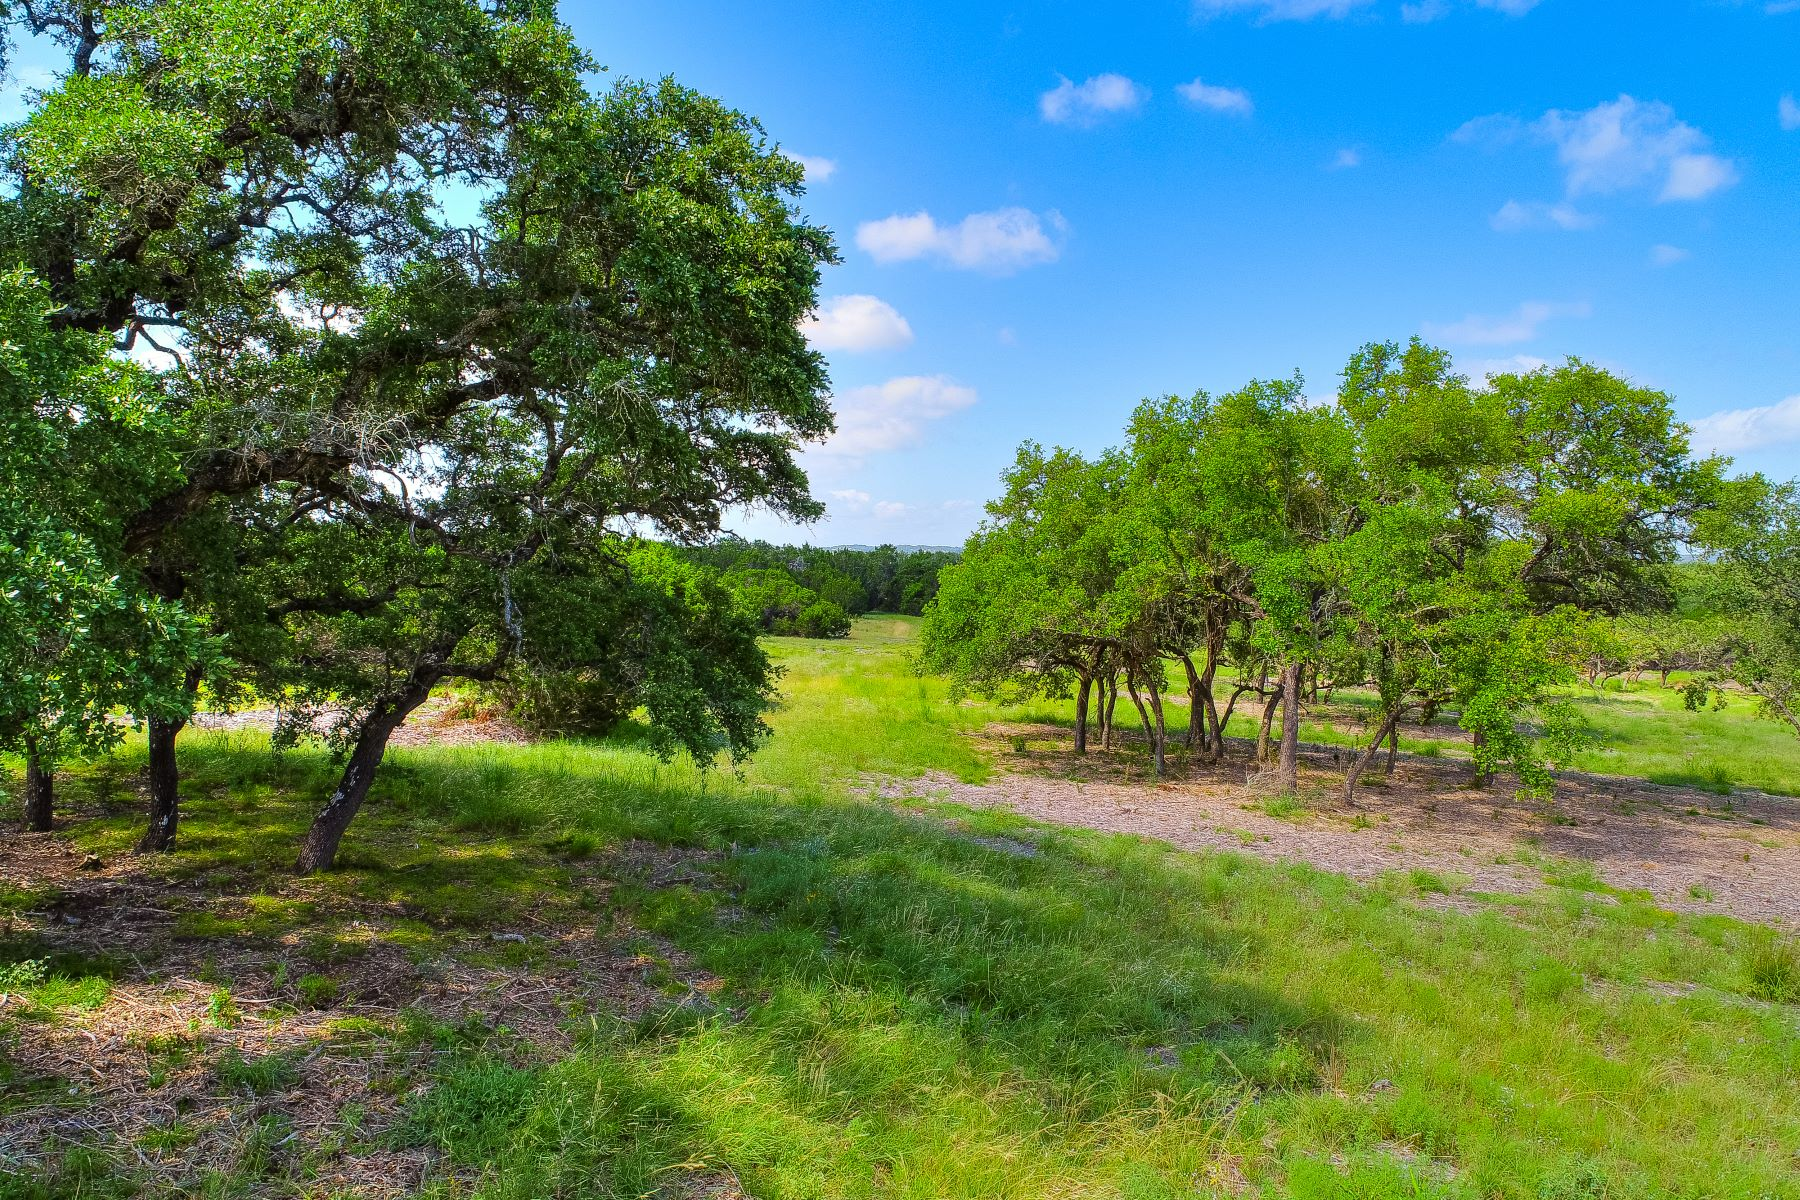 Land for Sale at 285 Calvary Cove, Dripping Springs, TX 78620 285 Calvary Cove Dripping Springs, Texas 78620 United States